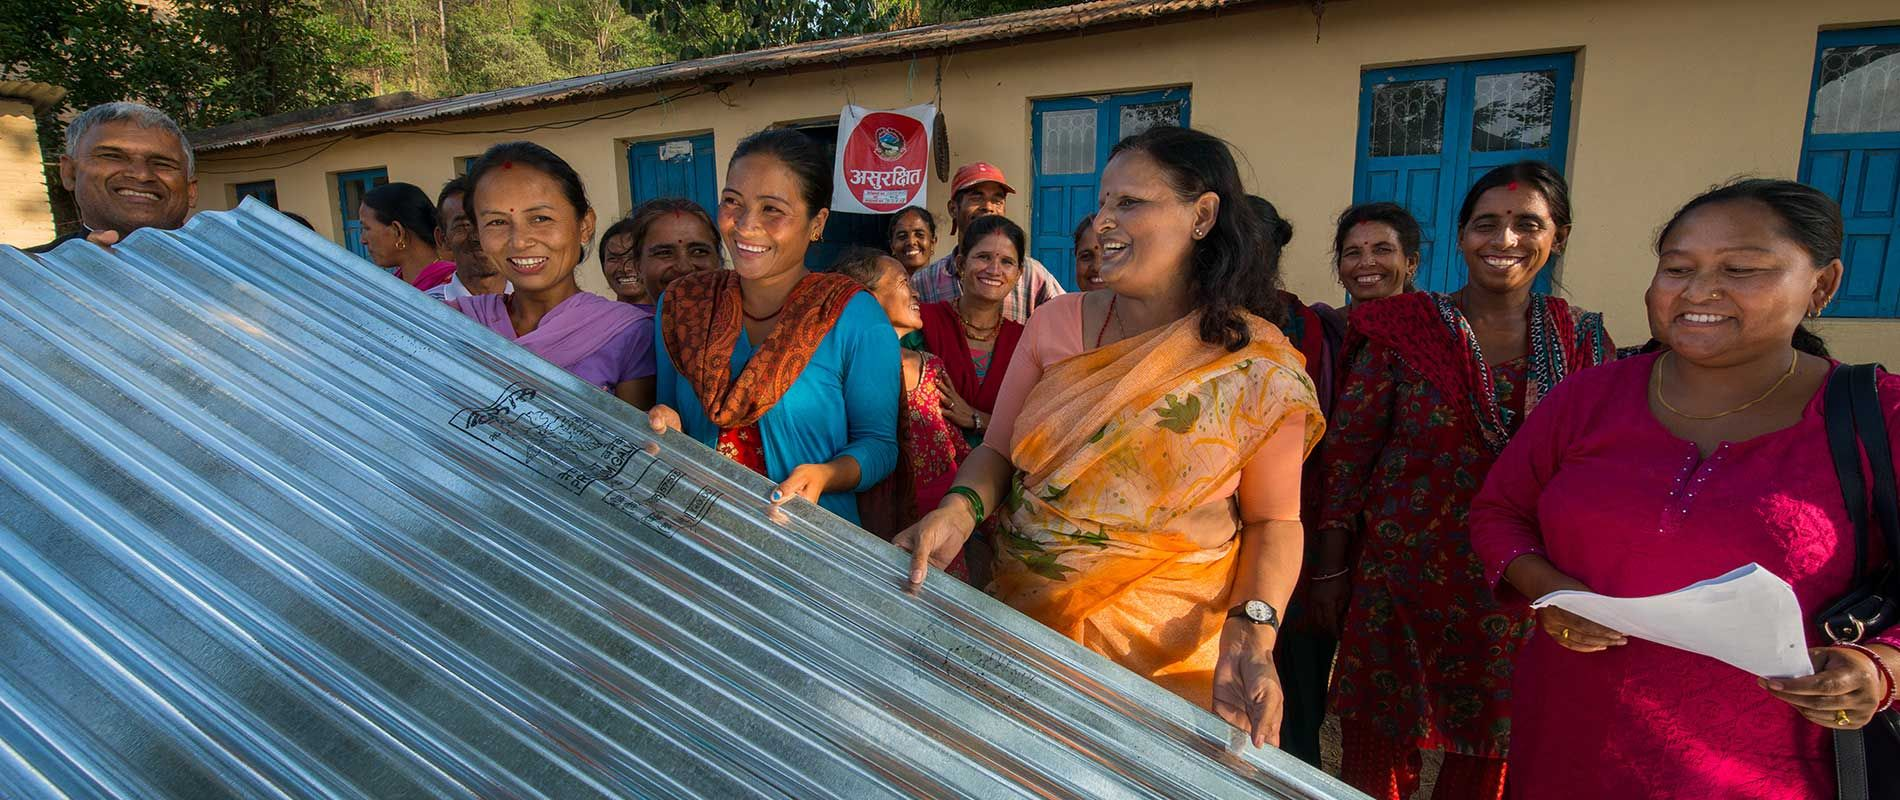 Women Awareness Center Nepal is supplying local women in Panchkl Pipaldanda, Kavre, with sheets of zinc-corrugated tin for rebuilding homes  and shelters, with funds from Global Fund for Women. Here, Women Awareness Center Nepal founder Prativa Subedi (second from right), joins other women in lifting up one of the sheets.